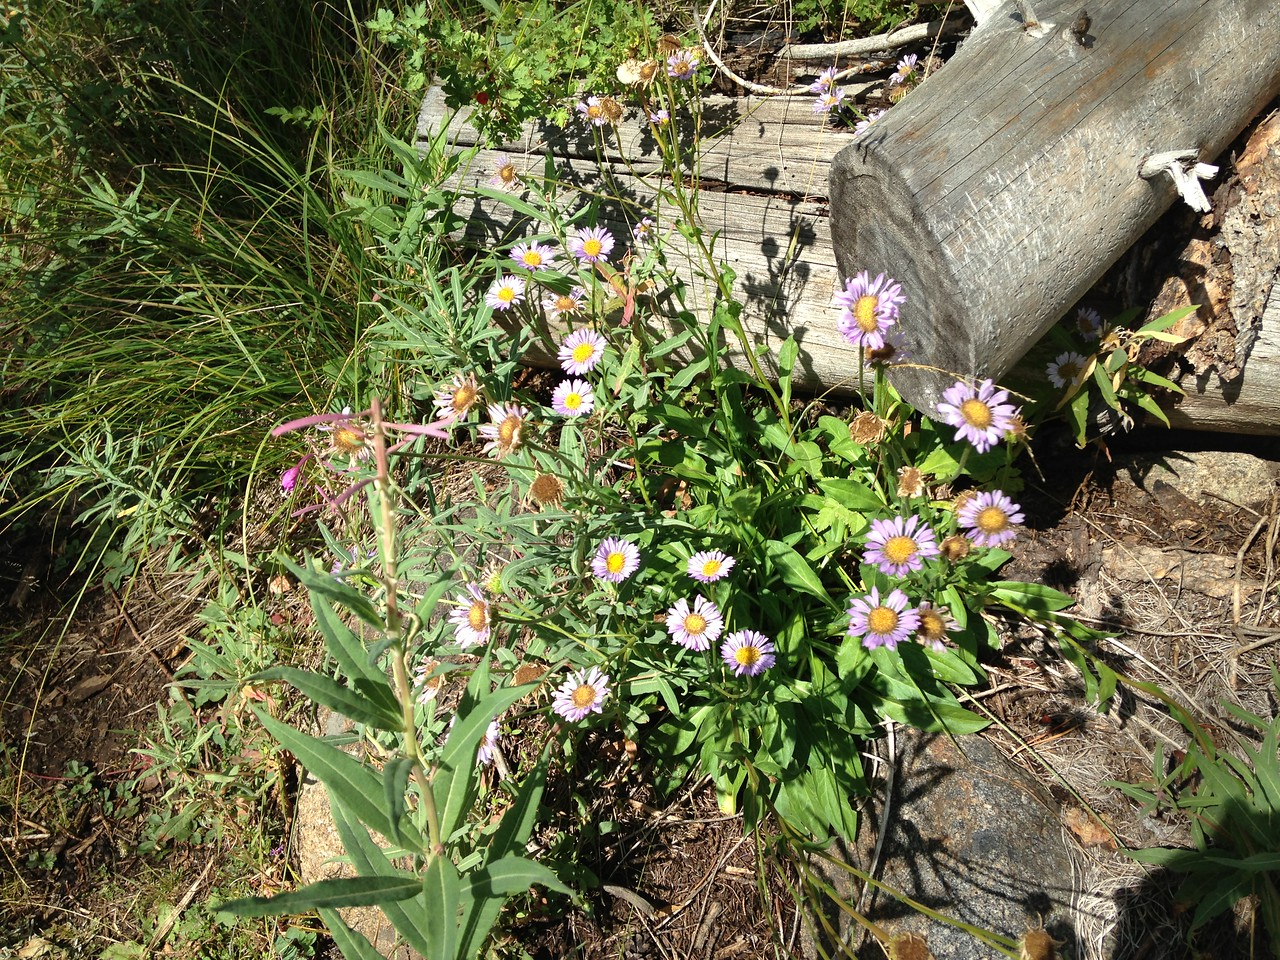 Many trailside flowers! I think these are Western Mountain Aster, plus a bit of Fireweed thrown in as a bonus.